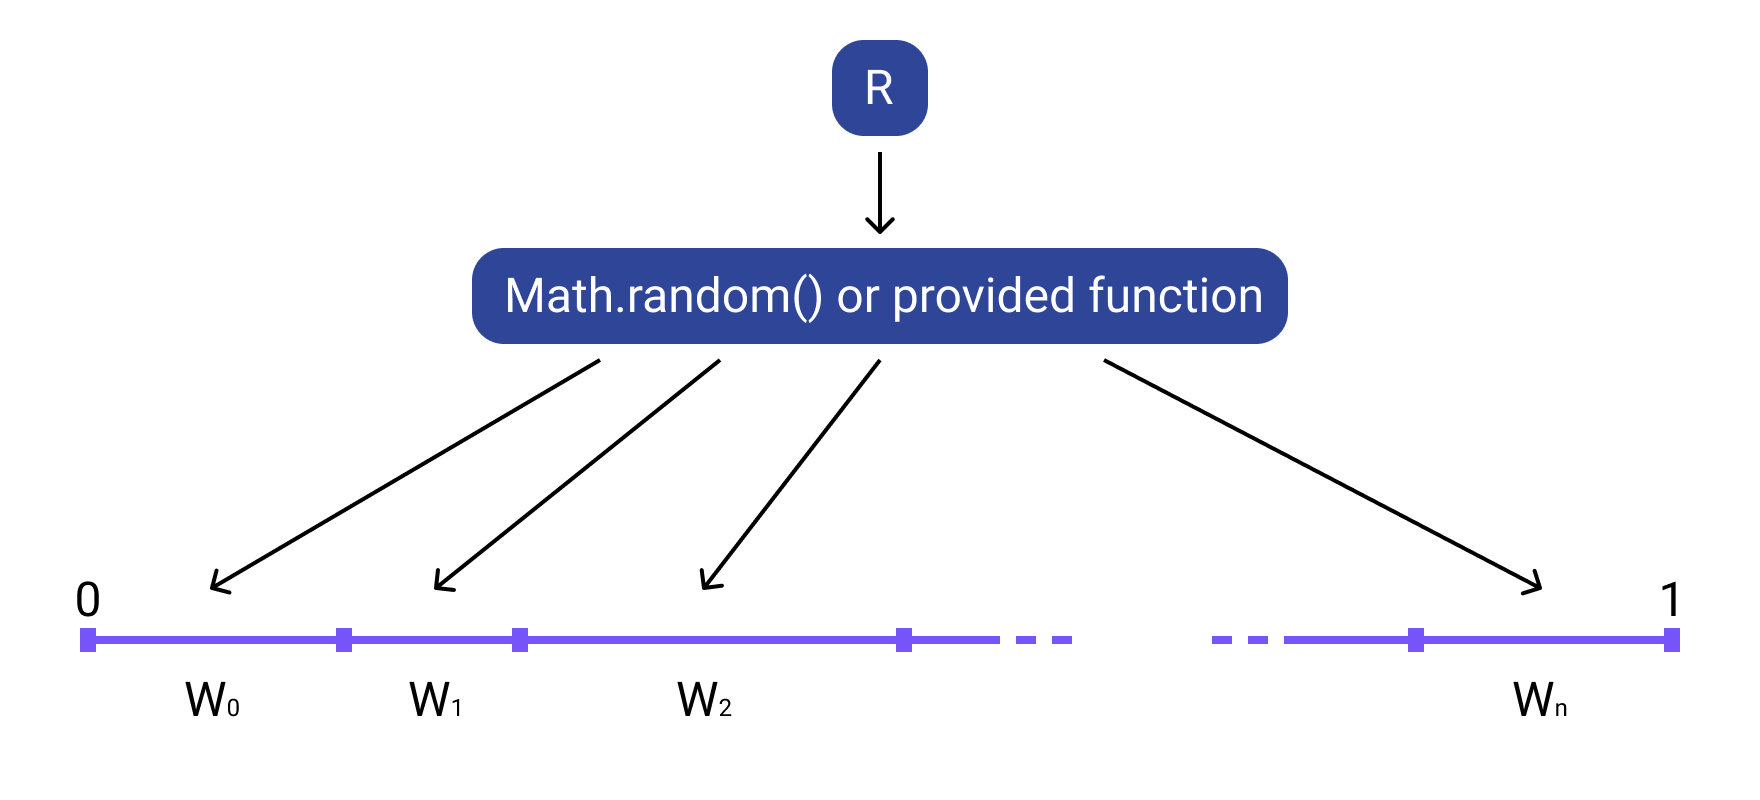 Illustration of the workflow